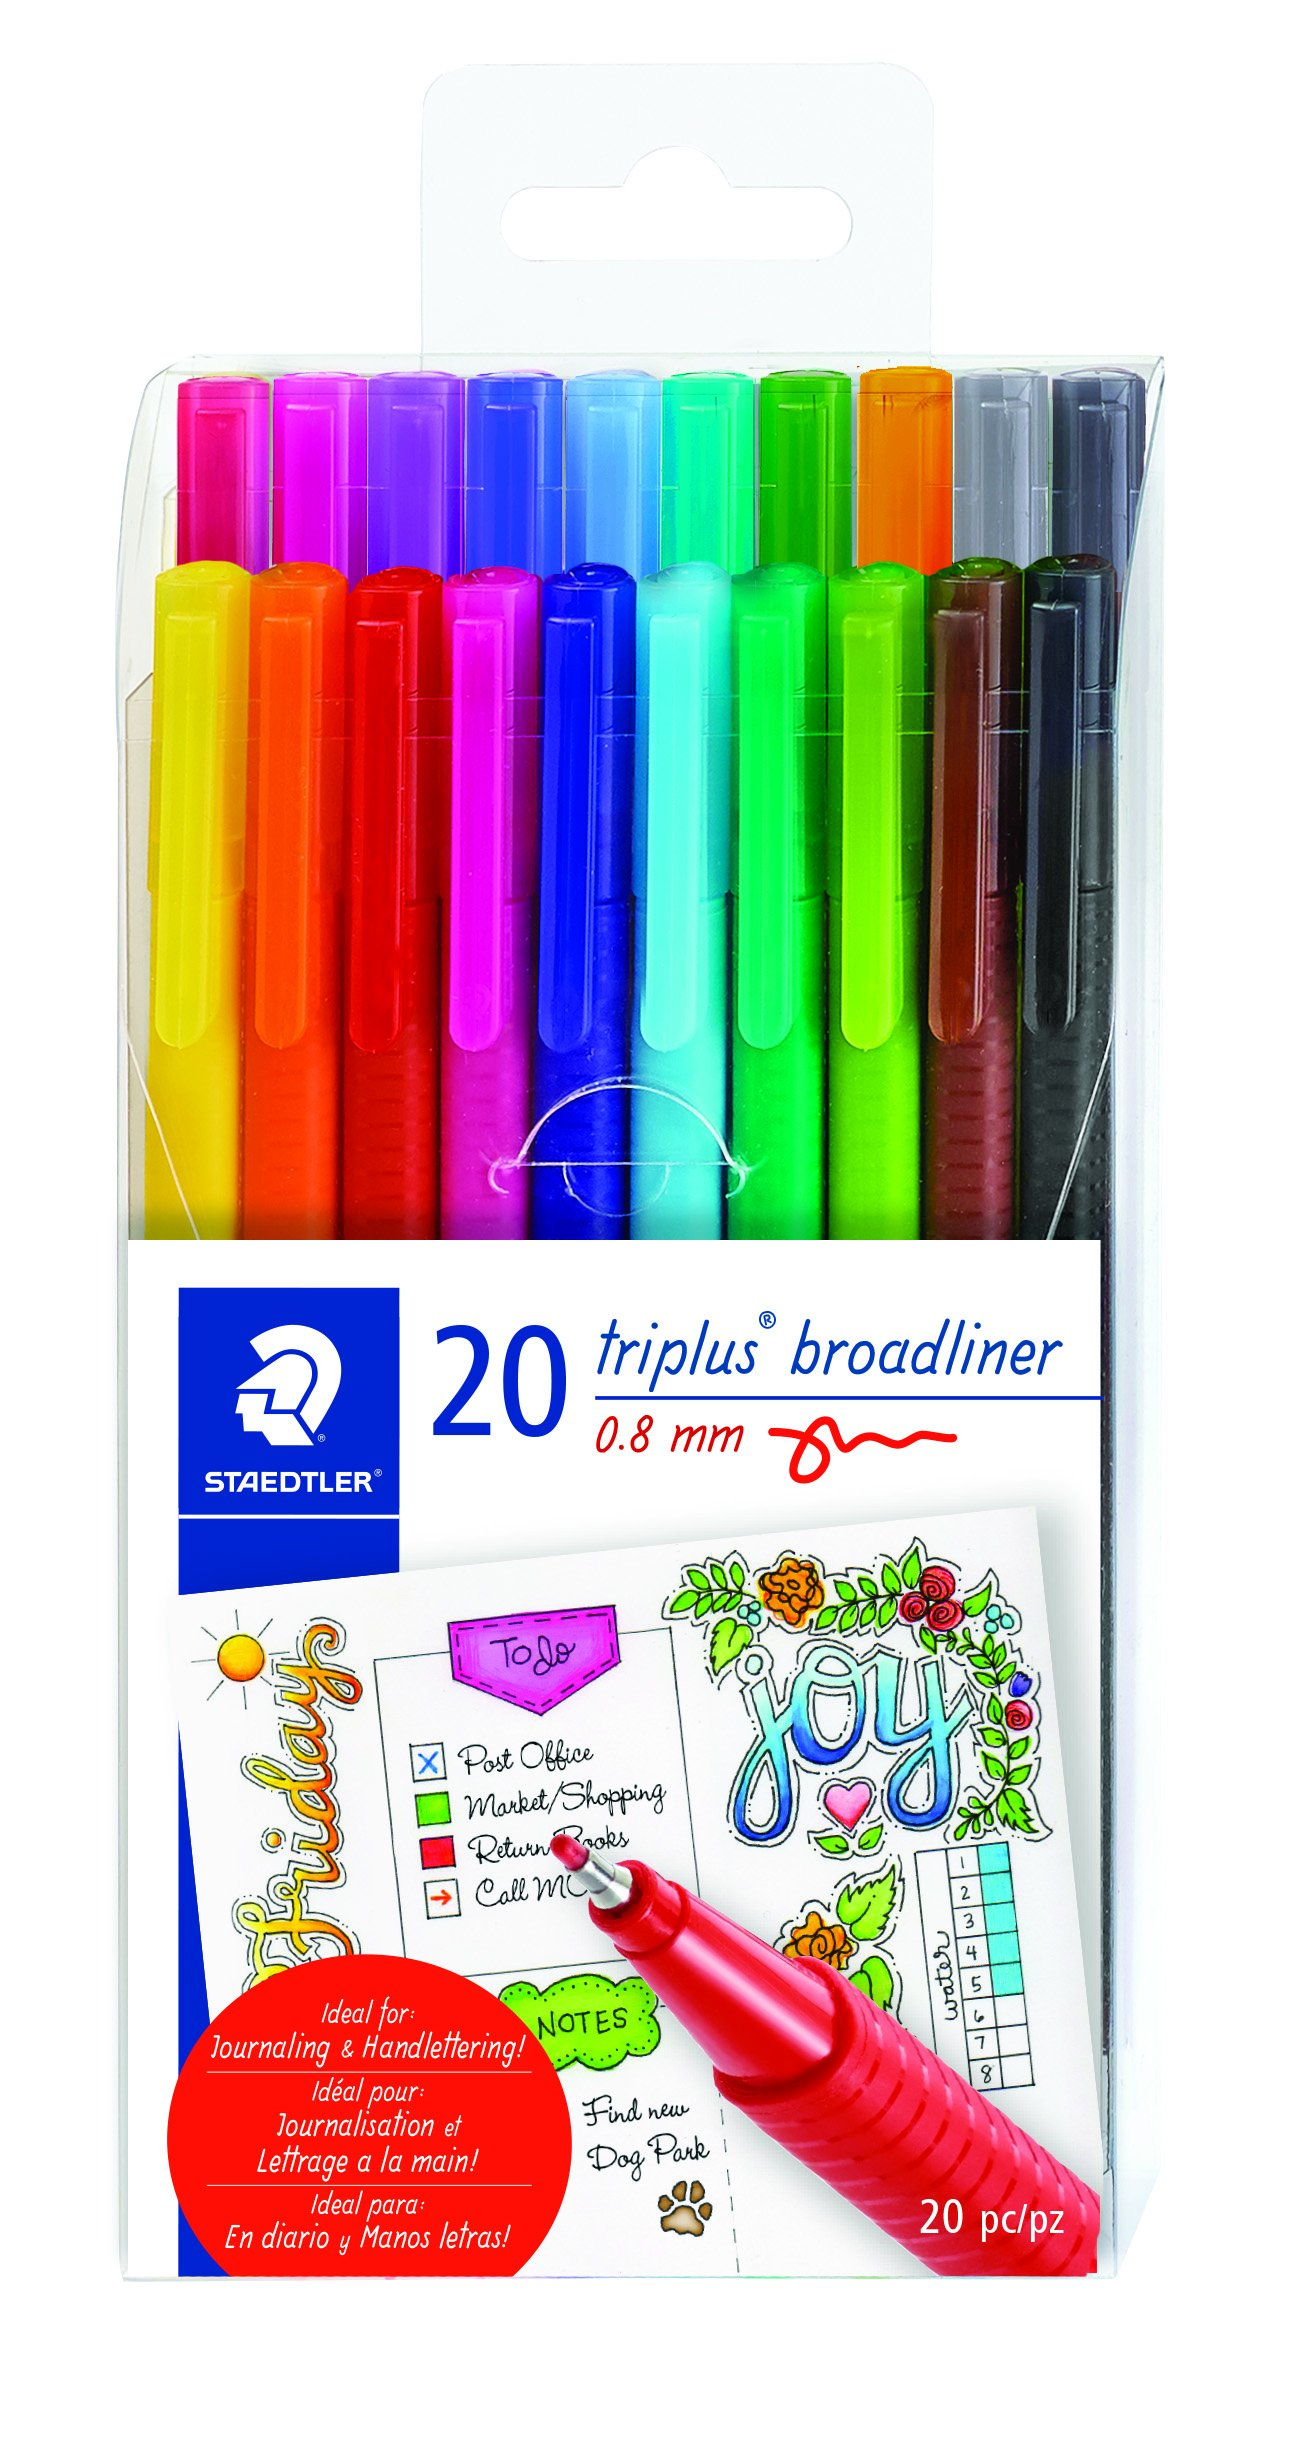 STAEDTLER triangular broad liner, triplus broadliner, 0.8mm metal-clad tip, journaling and hand lettering pen, set of 20 assorted colors, 338 TB20A6